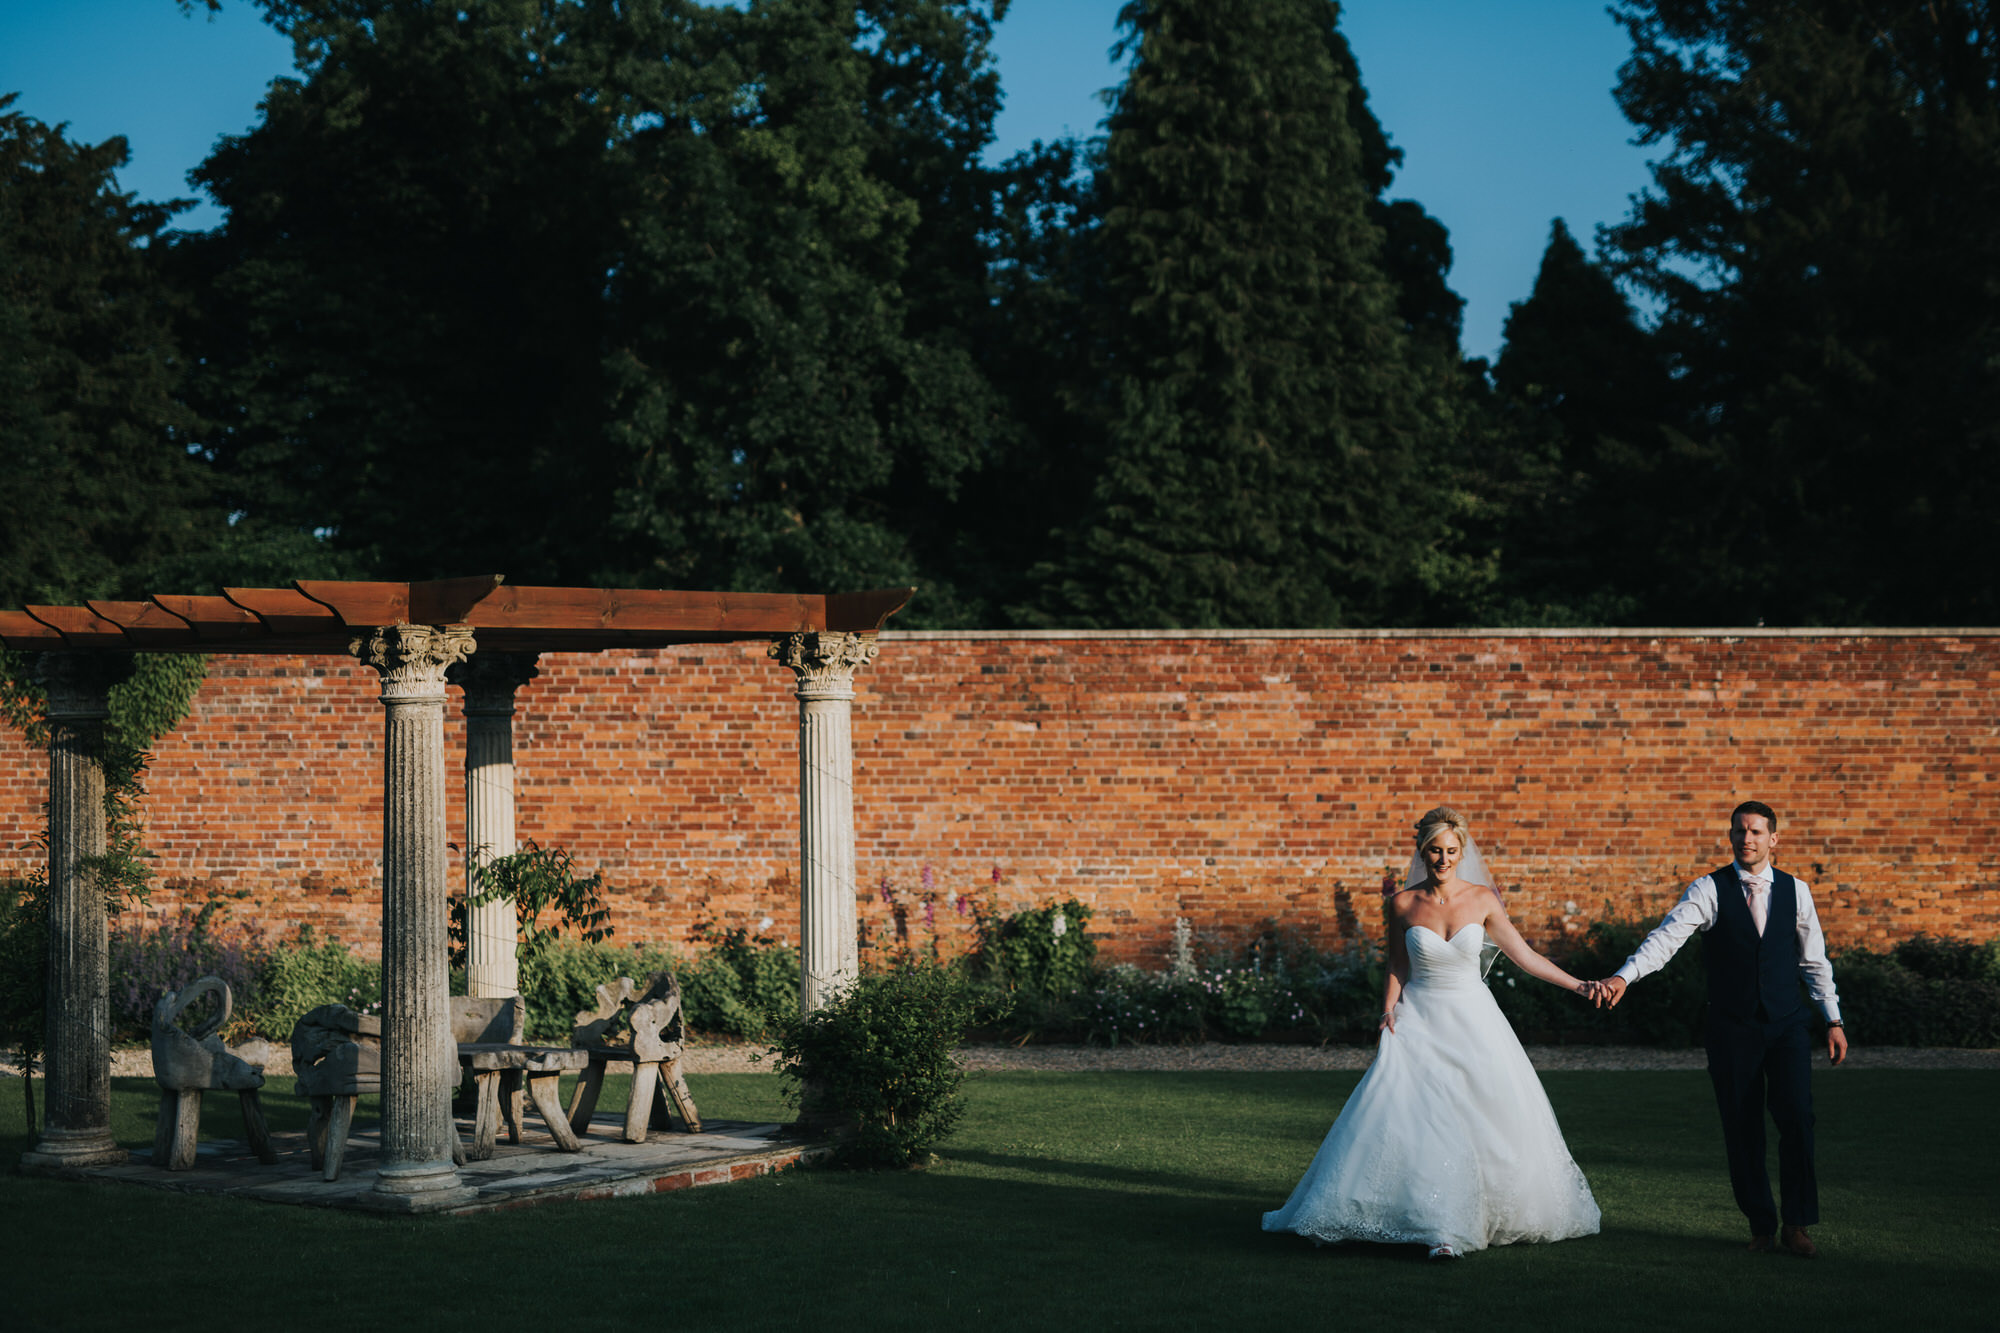 Best uk wedding photographer 2018 28